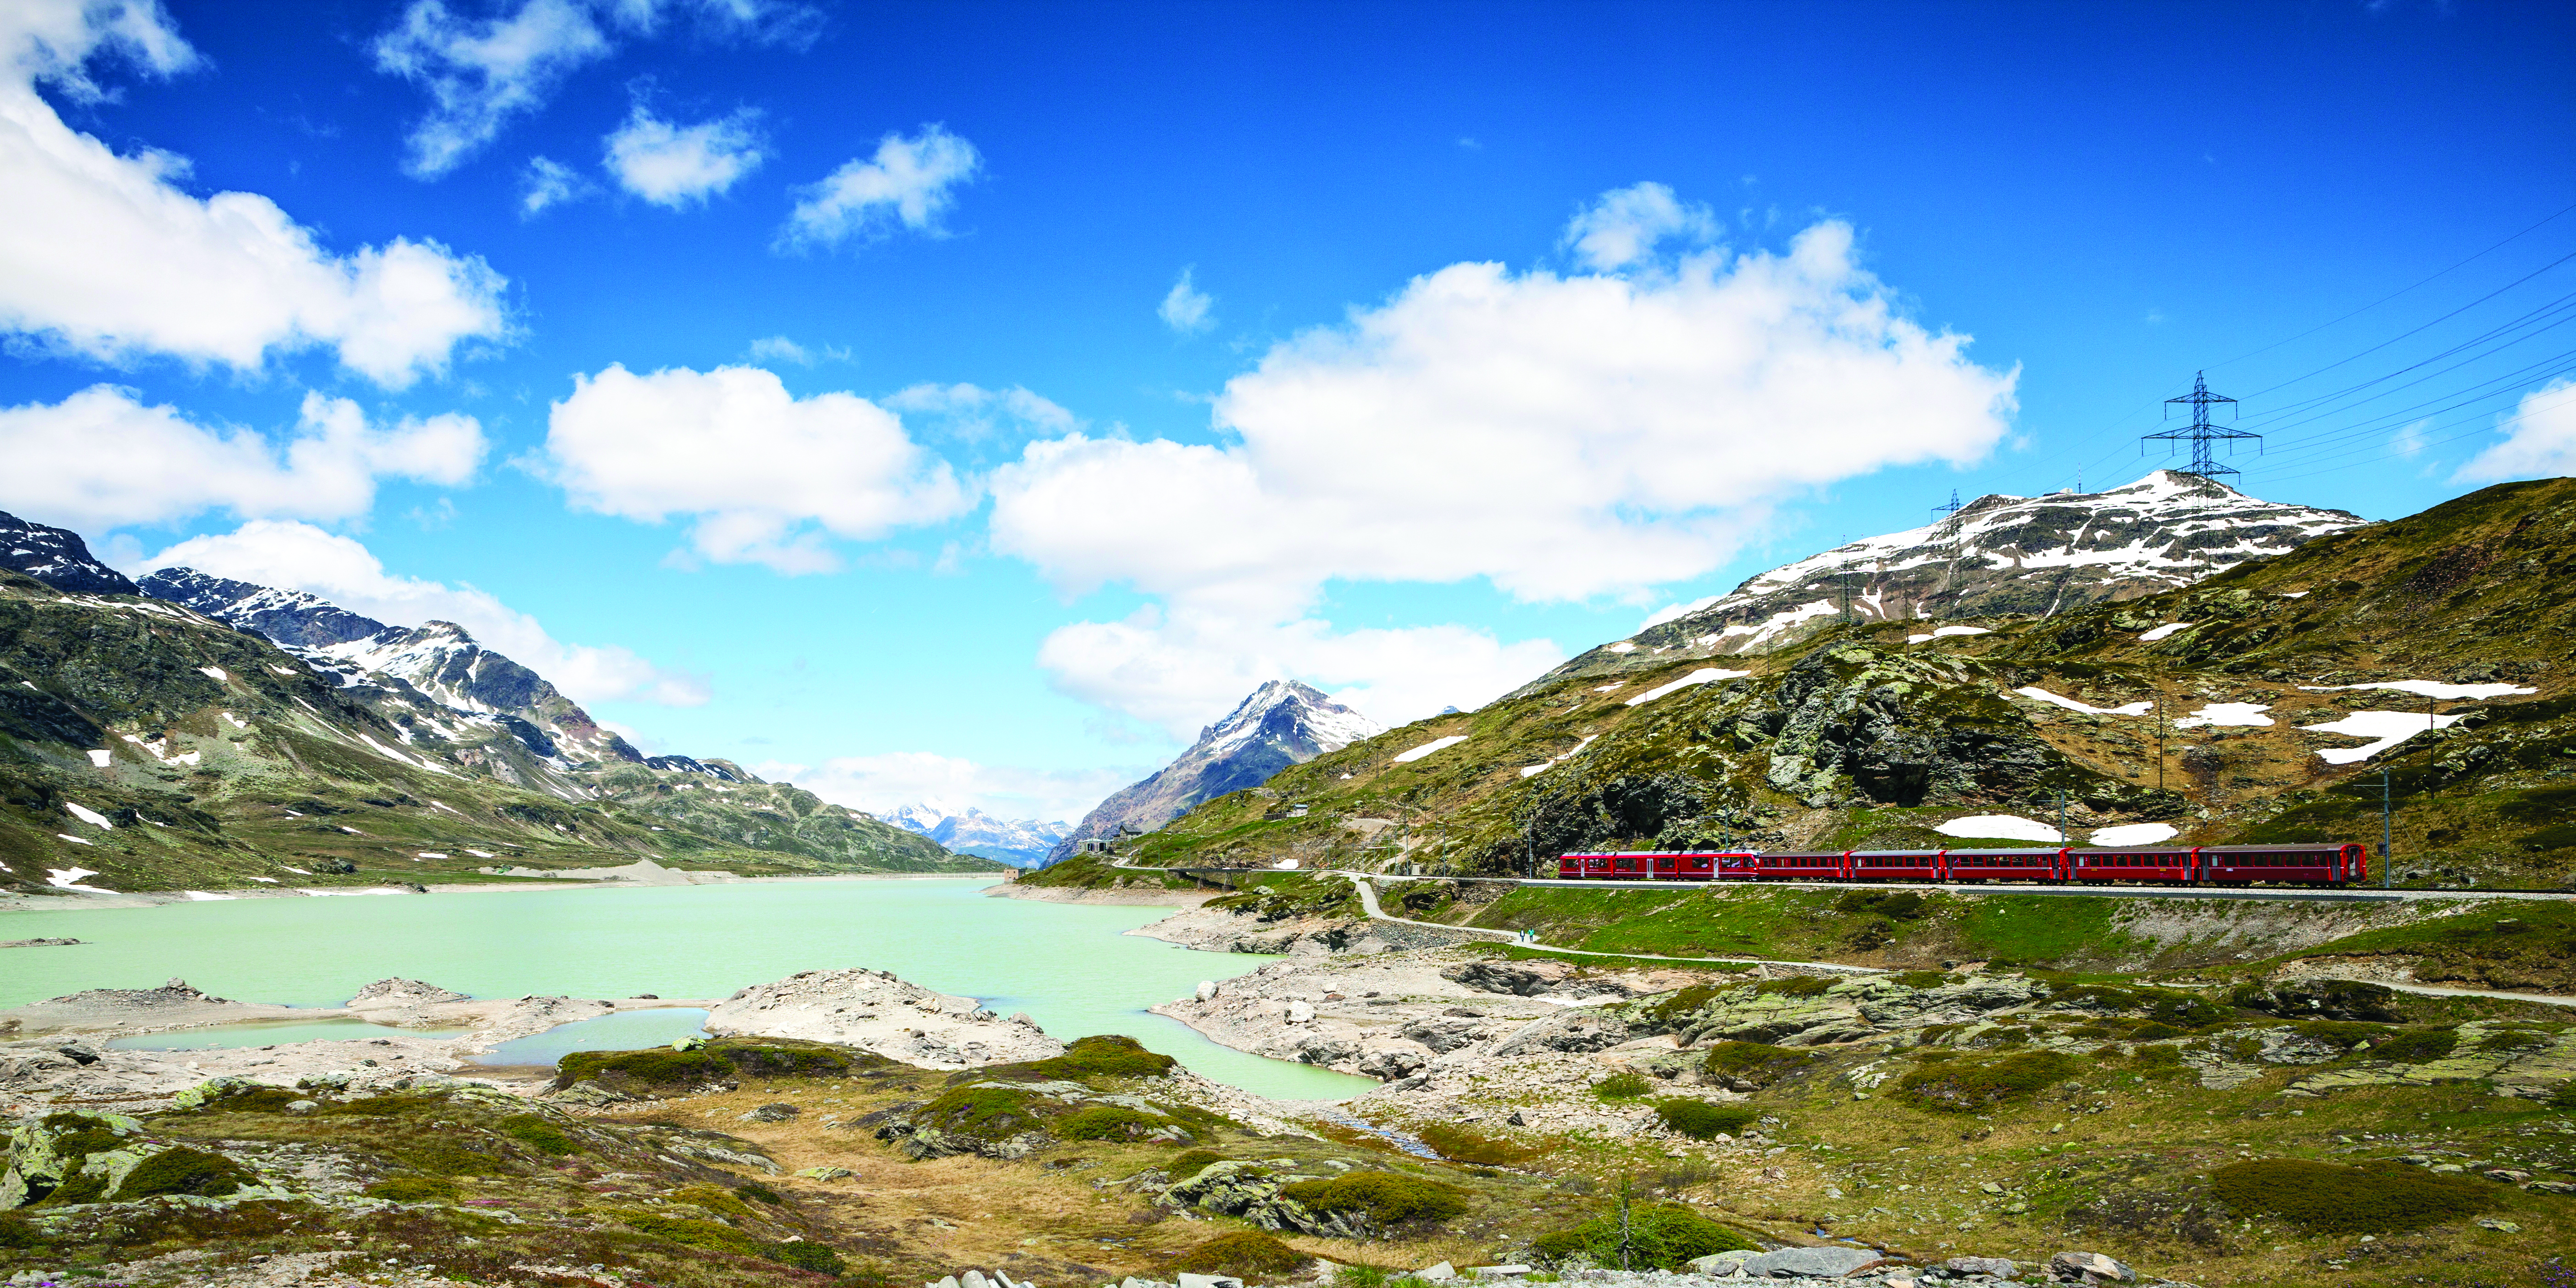 Alpine Lakes & Scenic Trains featuring a cruise on Lake Maggiore and scenic trains in Switzerland & Italy